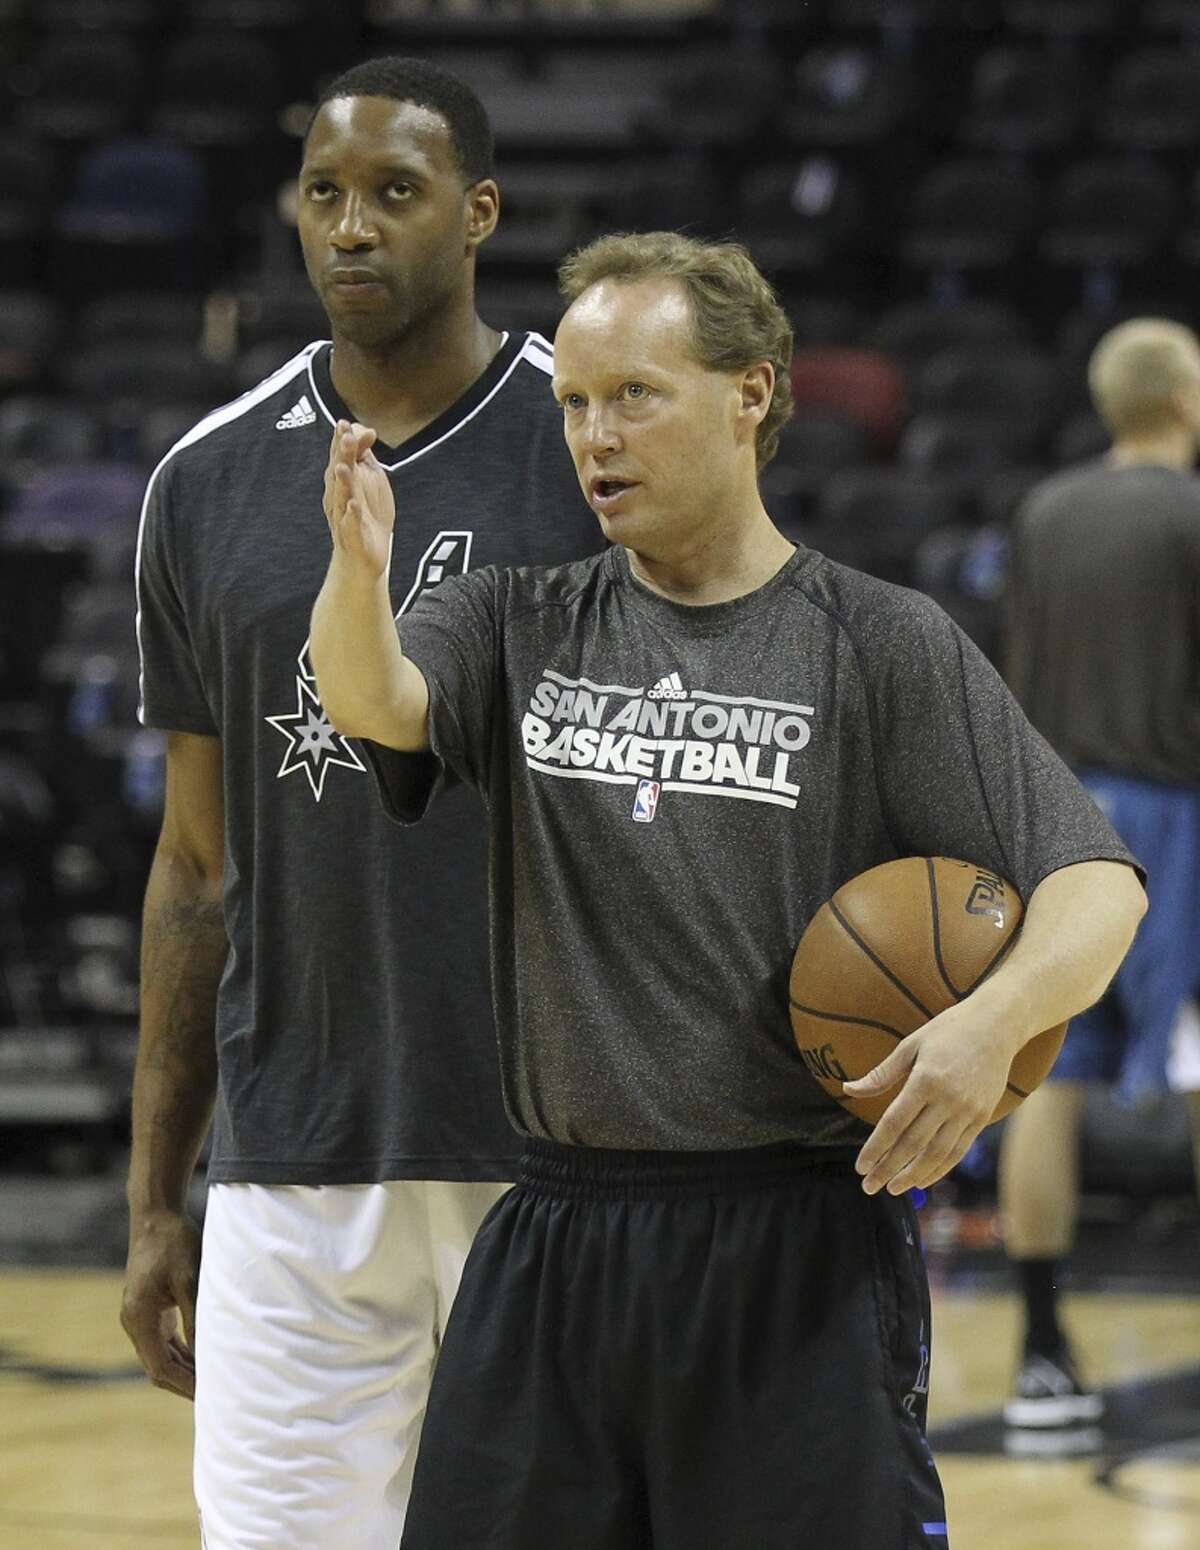 ... an assistant coach for the Spurs for 17 seasons (1996-2013). PHOTO: Budenholzer offers instruction to forward Tracy McGrady during shootaround prior to a game against the Minnesota Timberwolves on April 17, 2013. (Kin Man Hui / San Antonio Express-News)